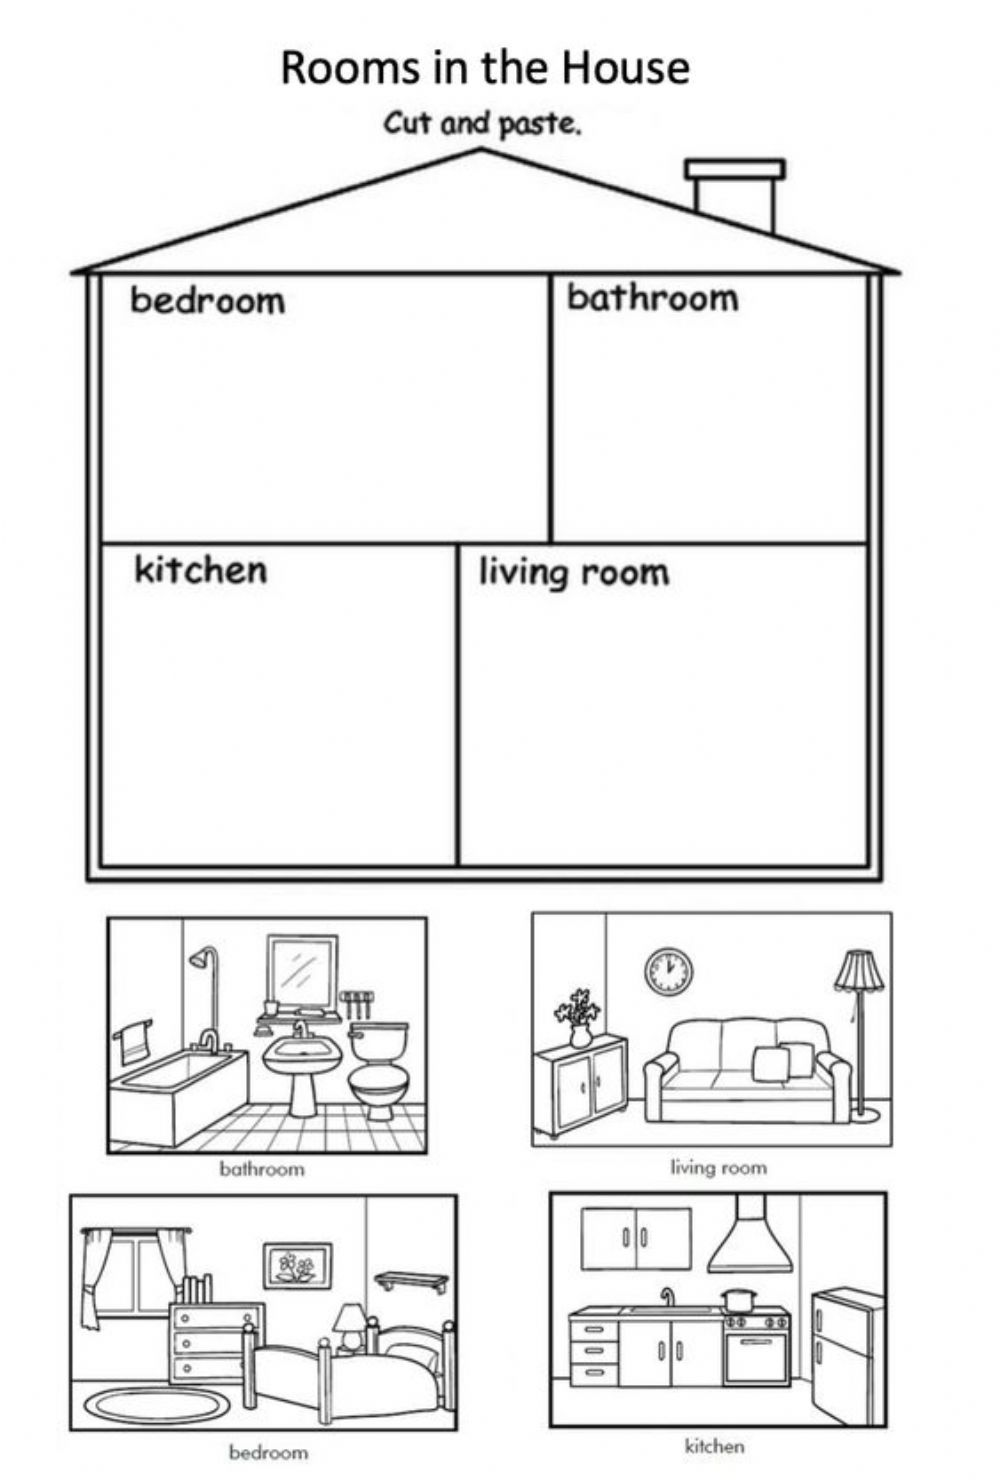 medium resolution of Parts of the house online exercise for grade 2